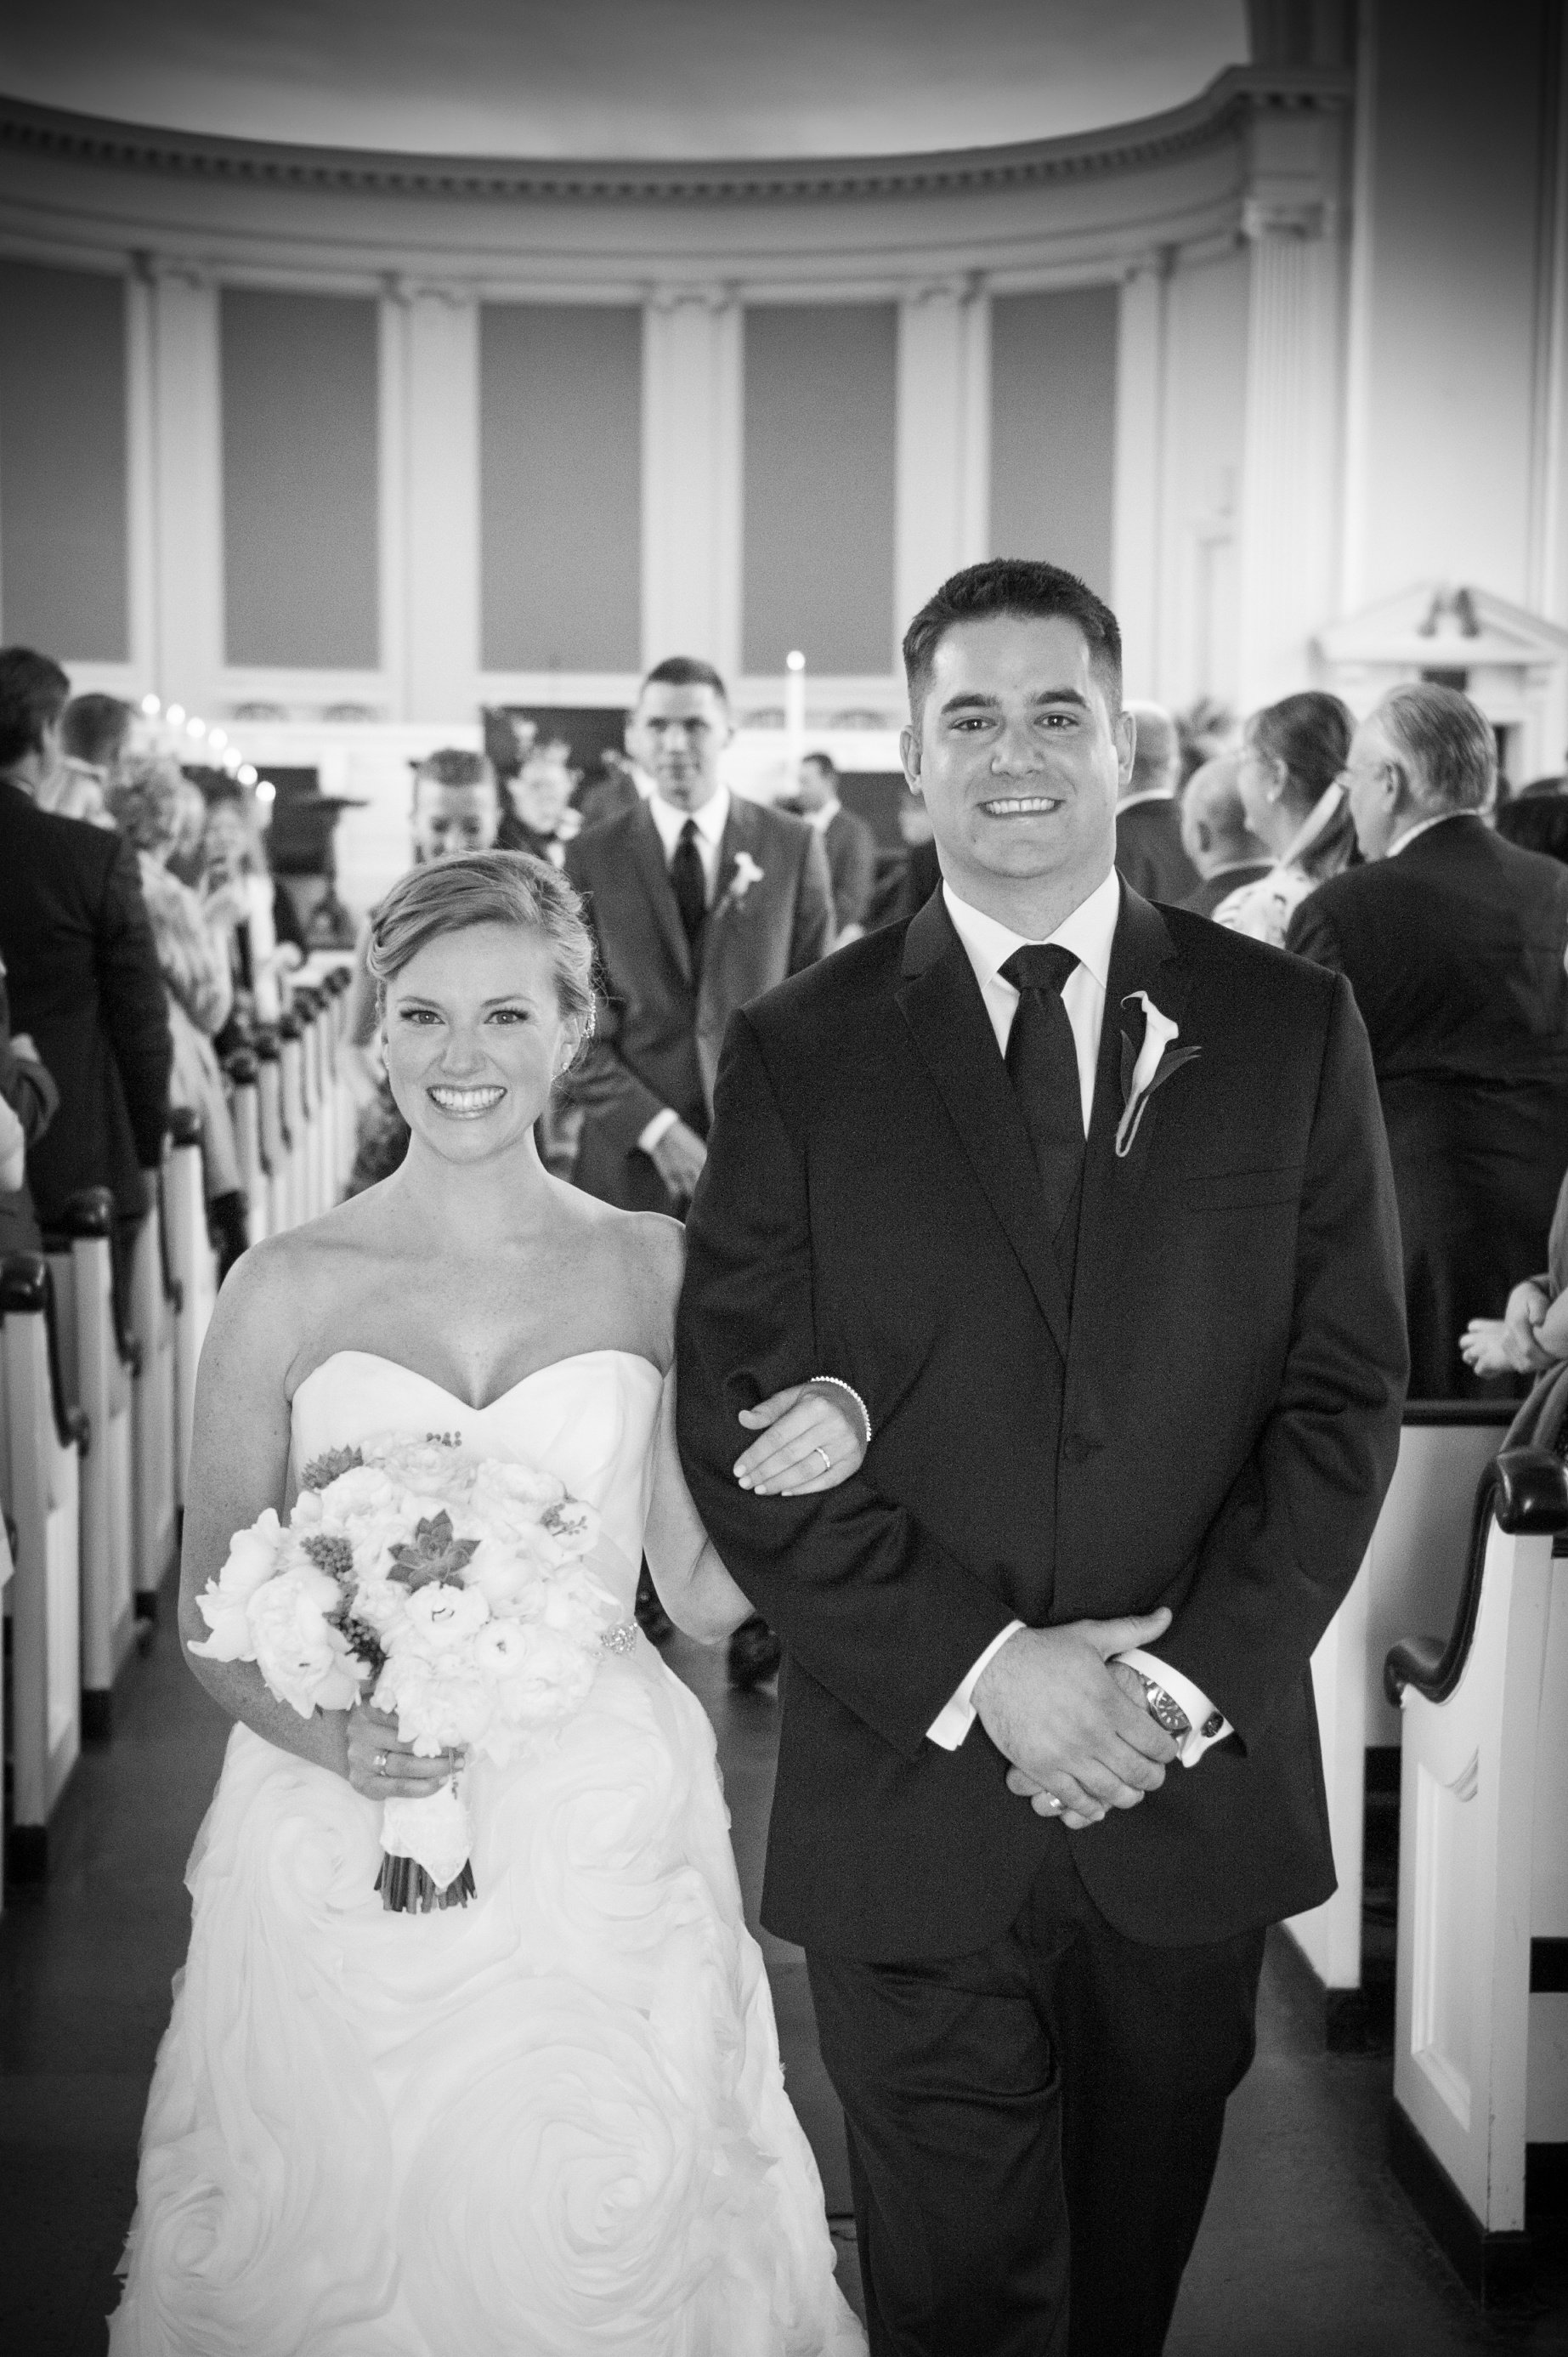 PERFECT BRIDE AND GROOM LEAVING CHURCH